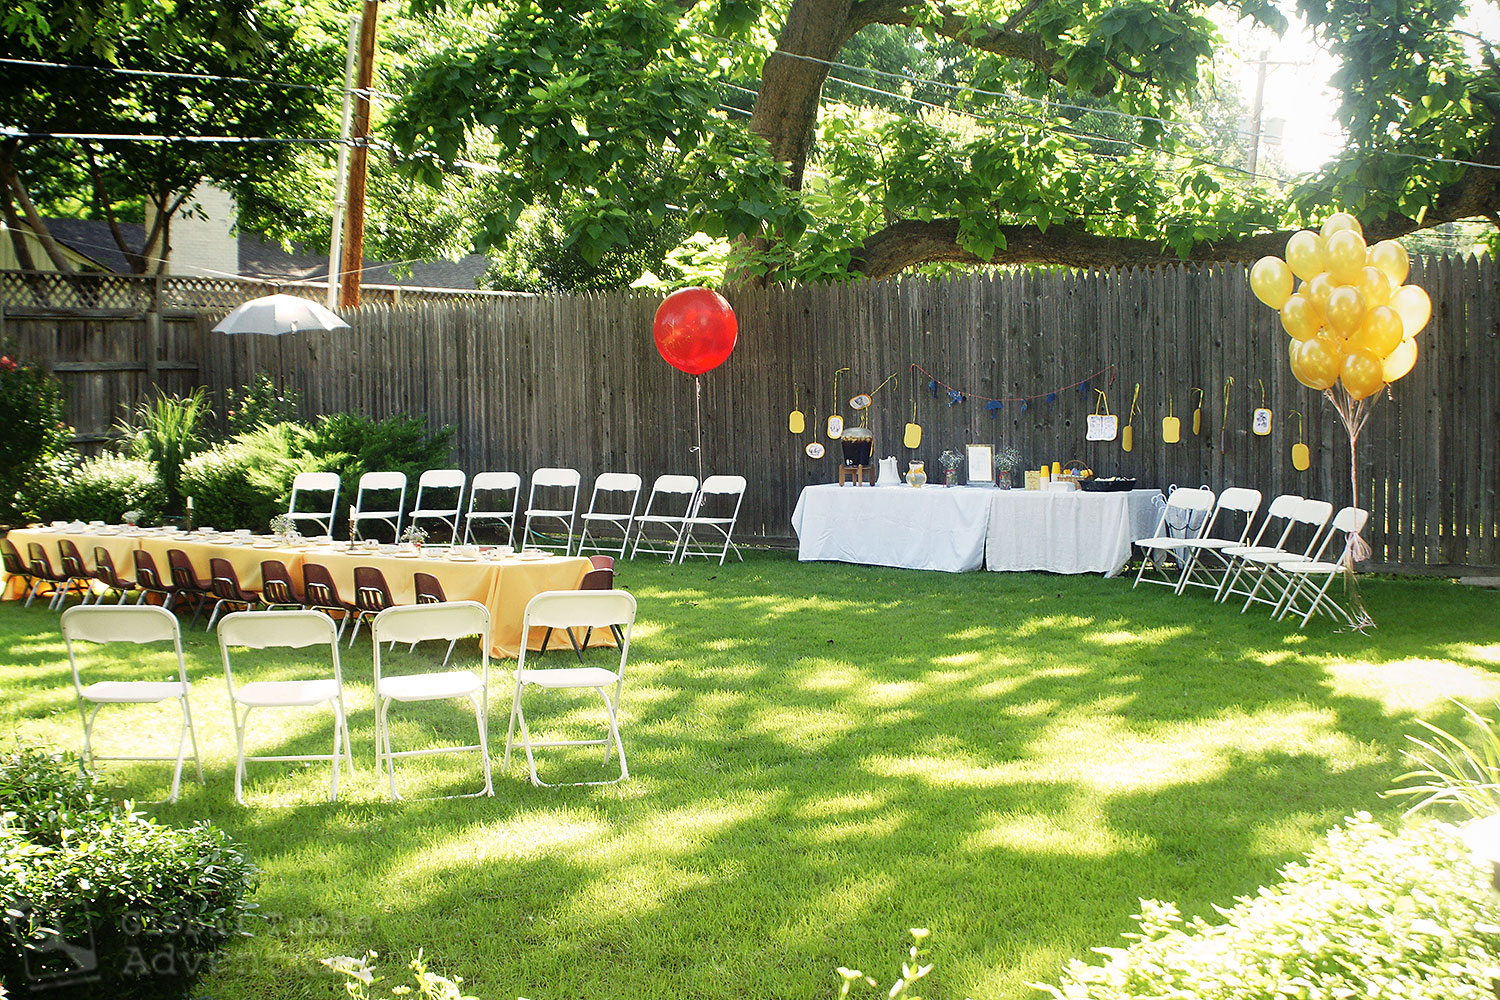 Mary Poppins Birthday Party: Decor